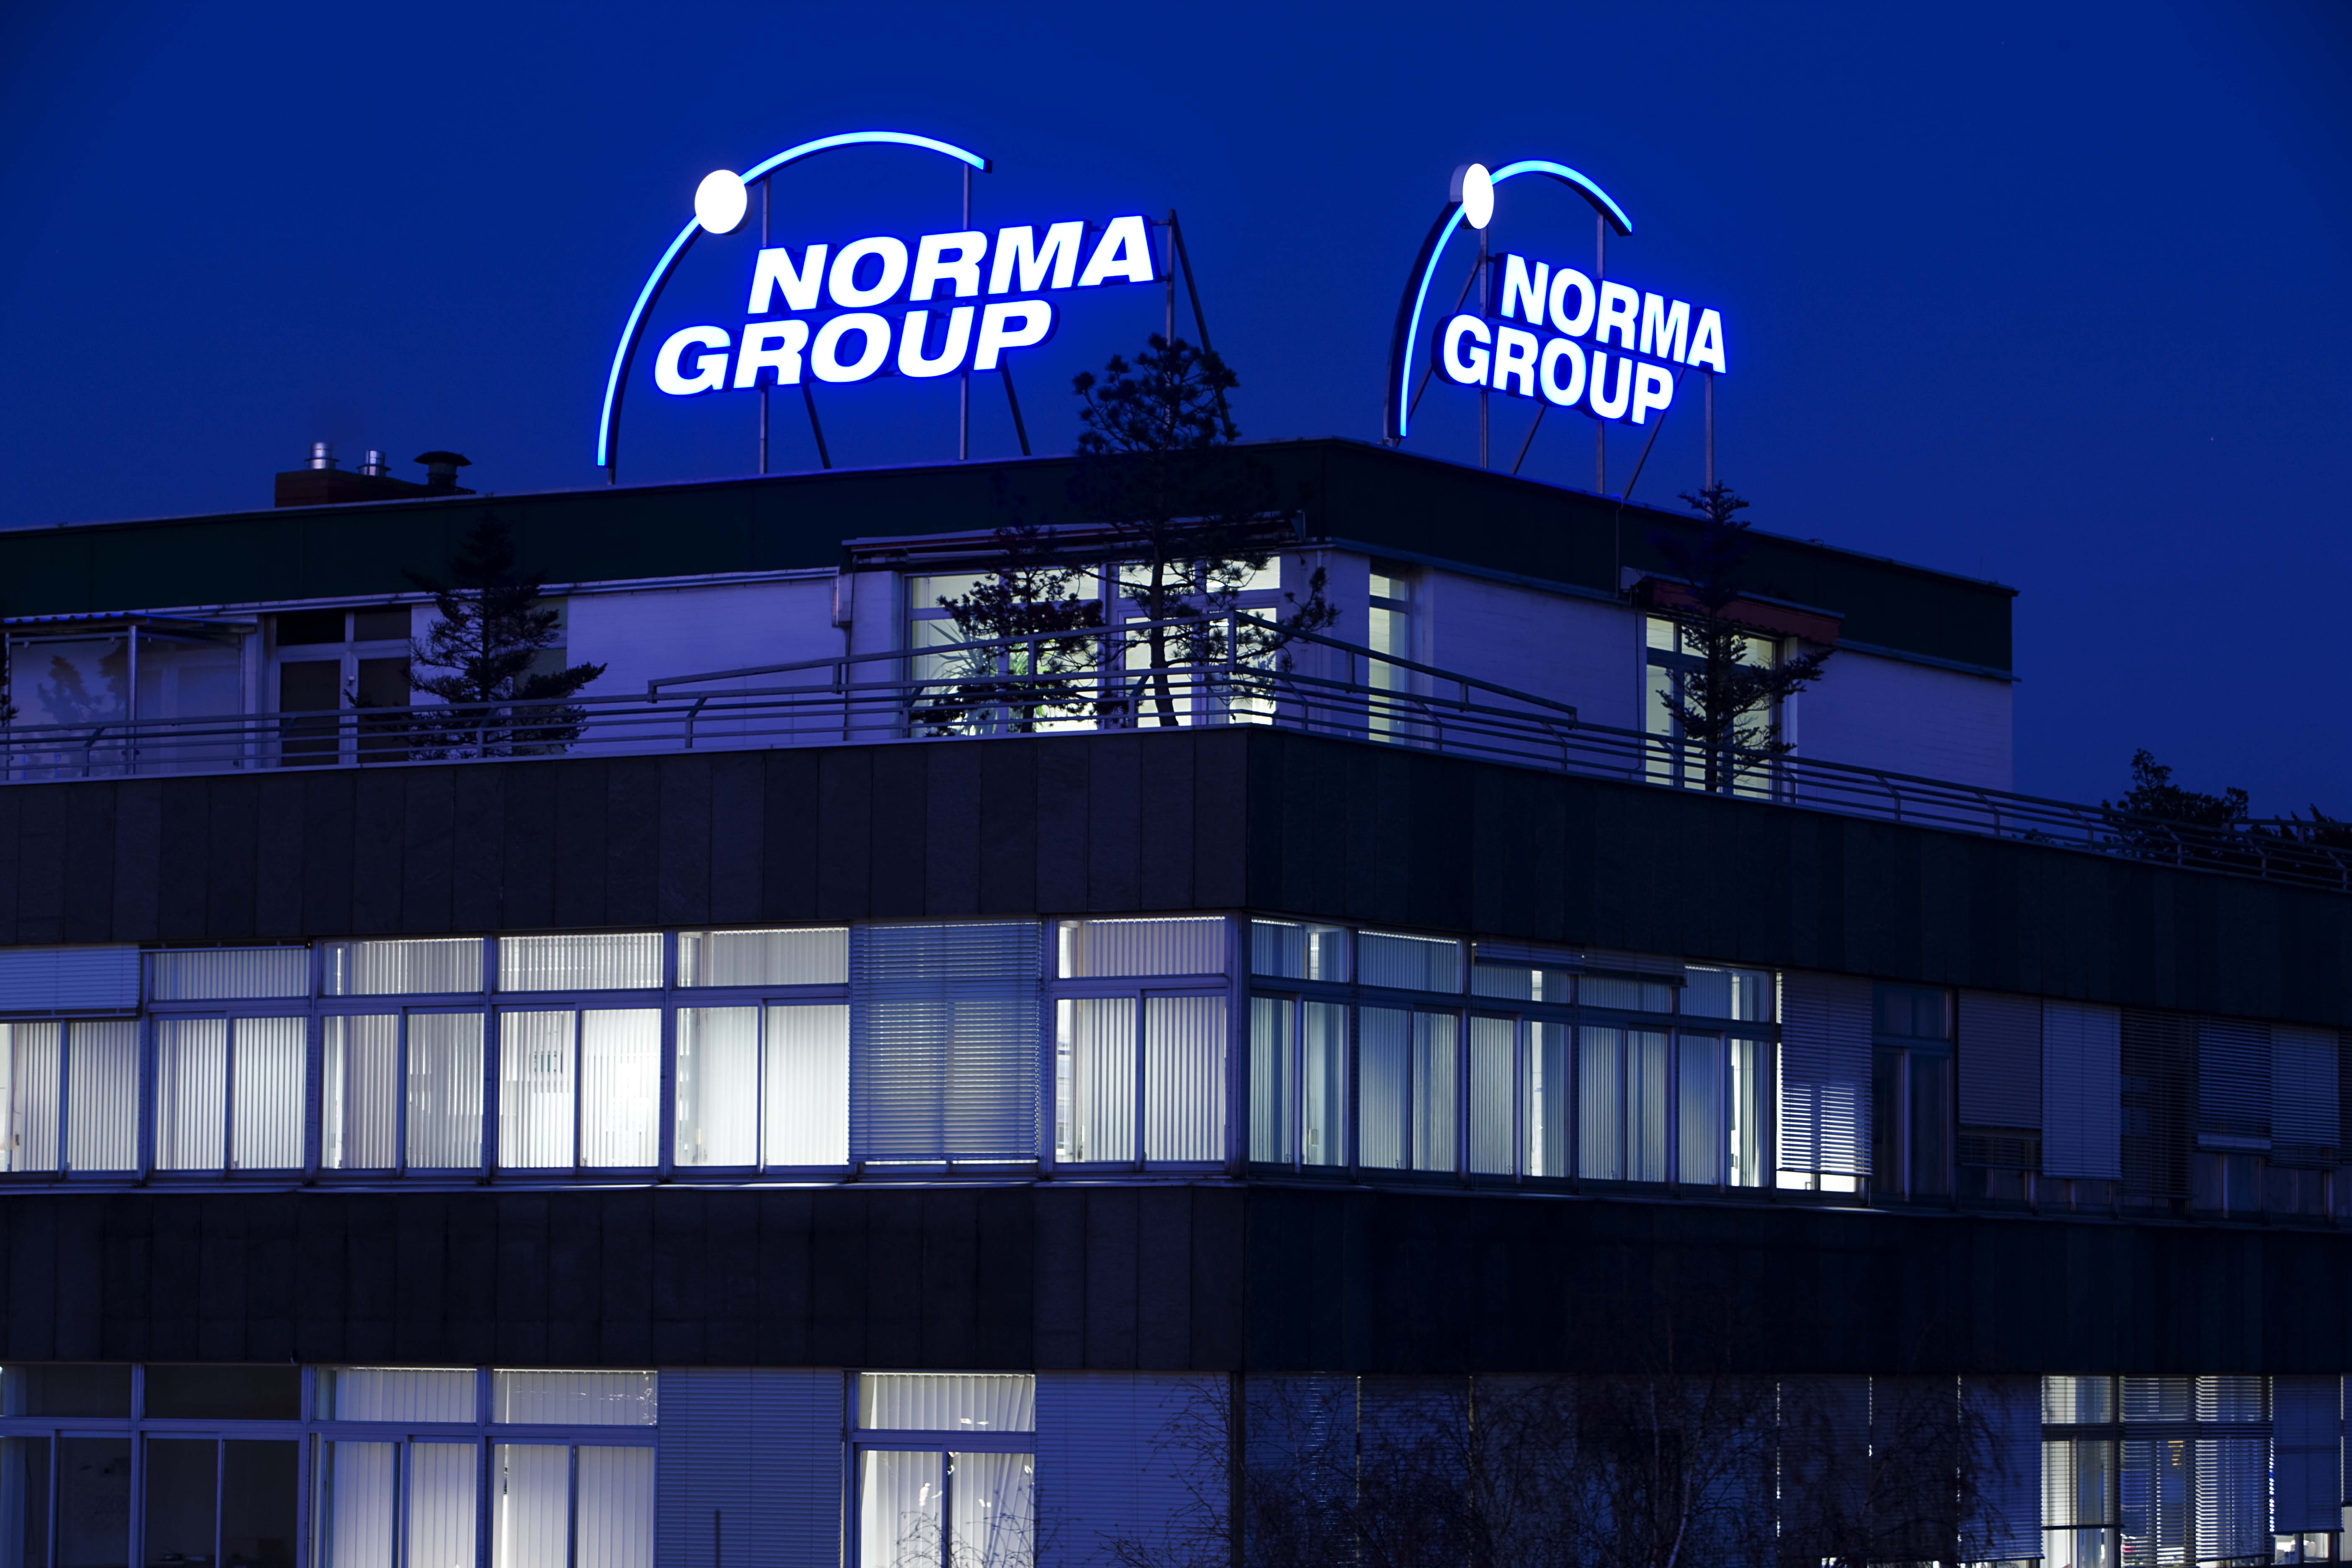 Norma Group Firmenzentrale